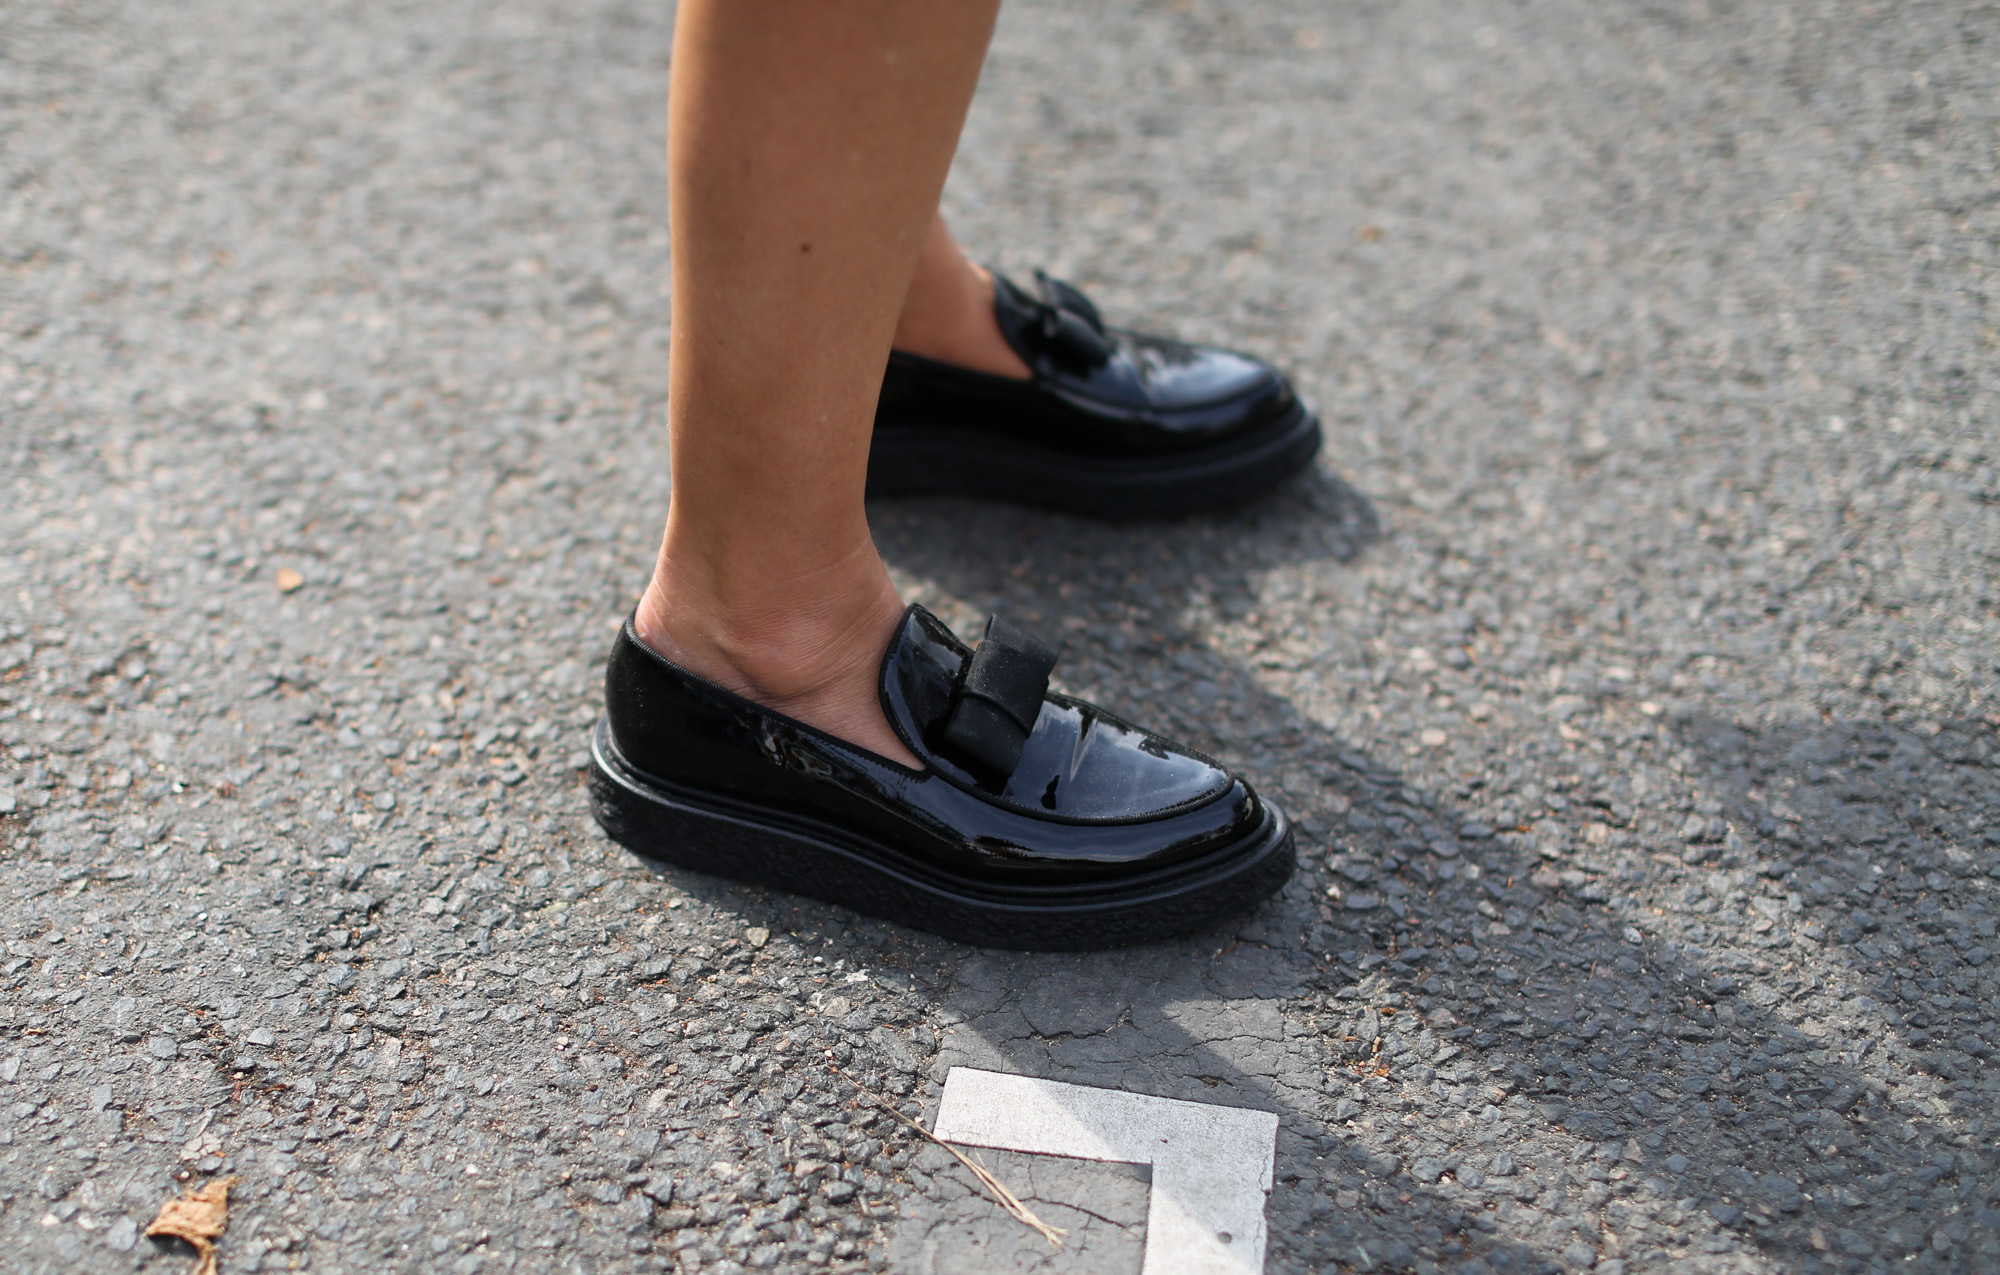 Clochet-streetstyle-details-loafers-clutch-paris-fashion-week-3